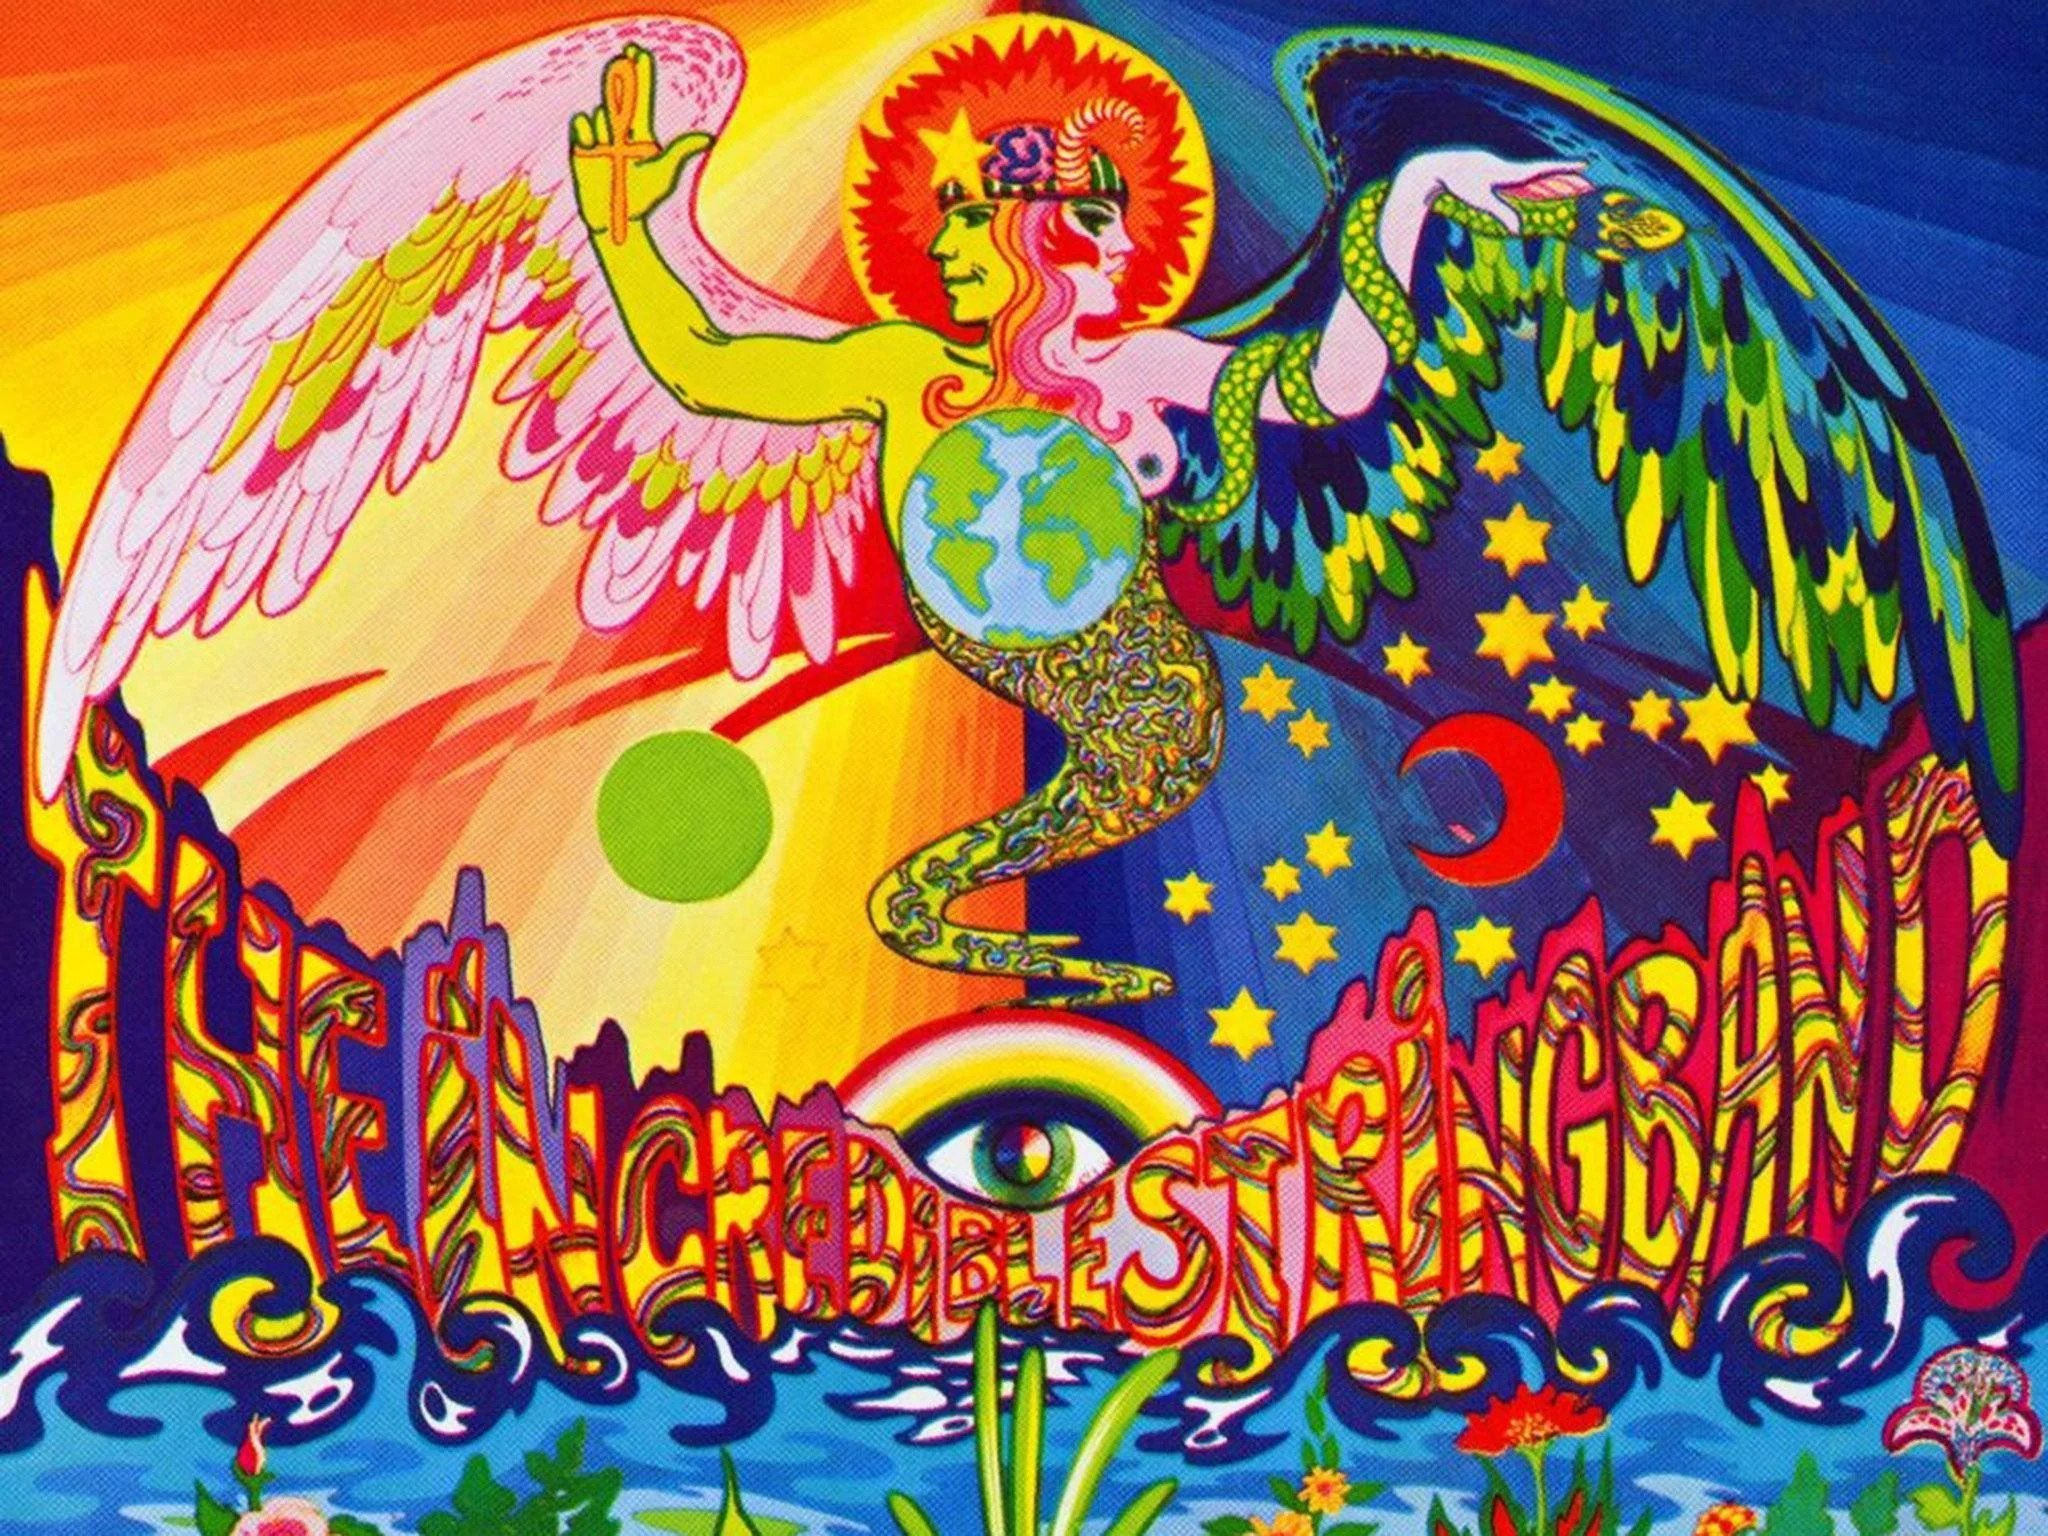 psychedelic drugs may help